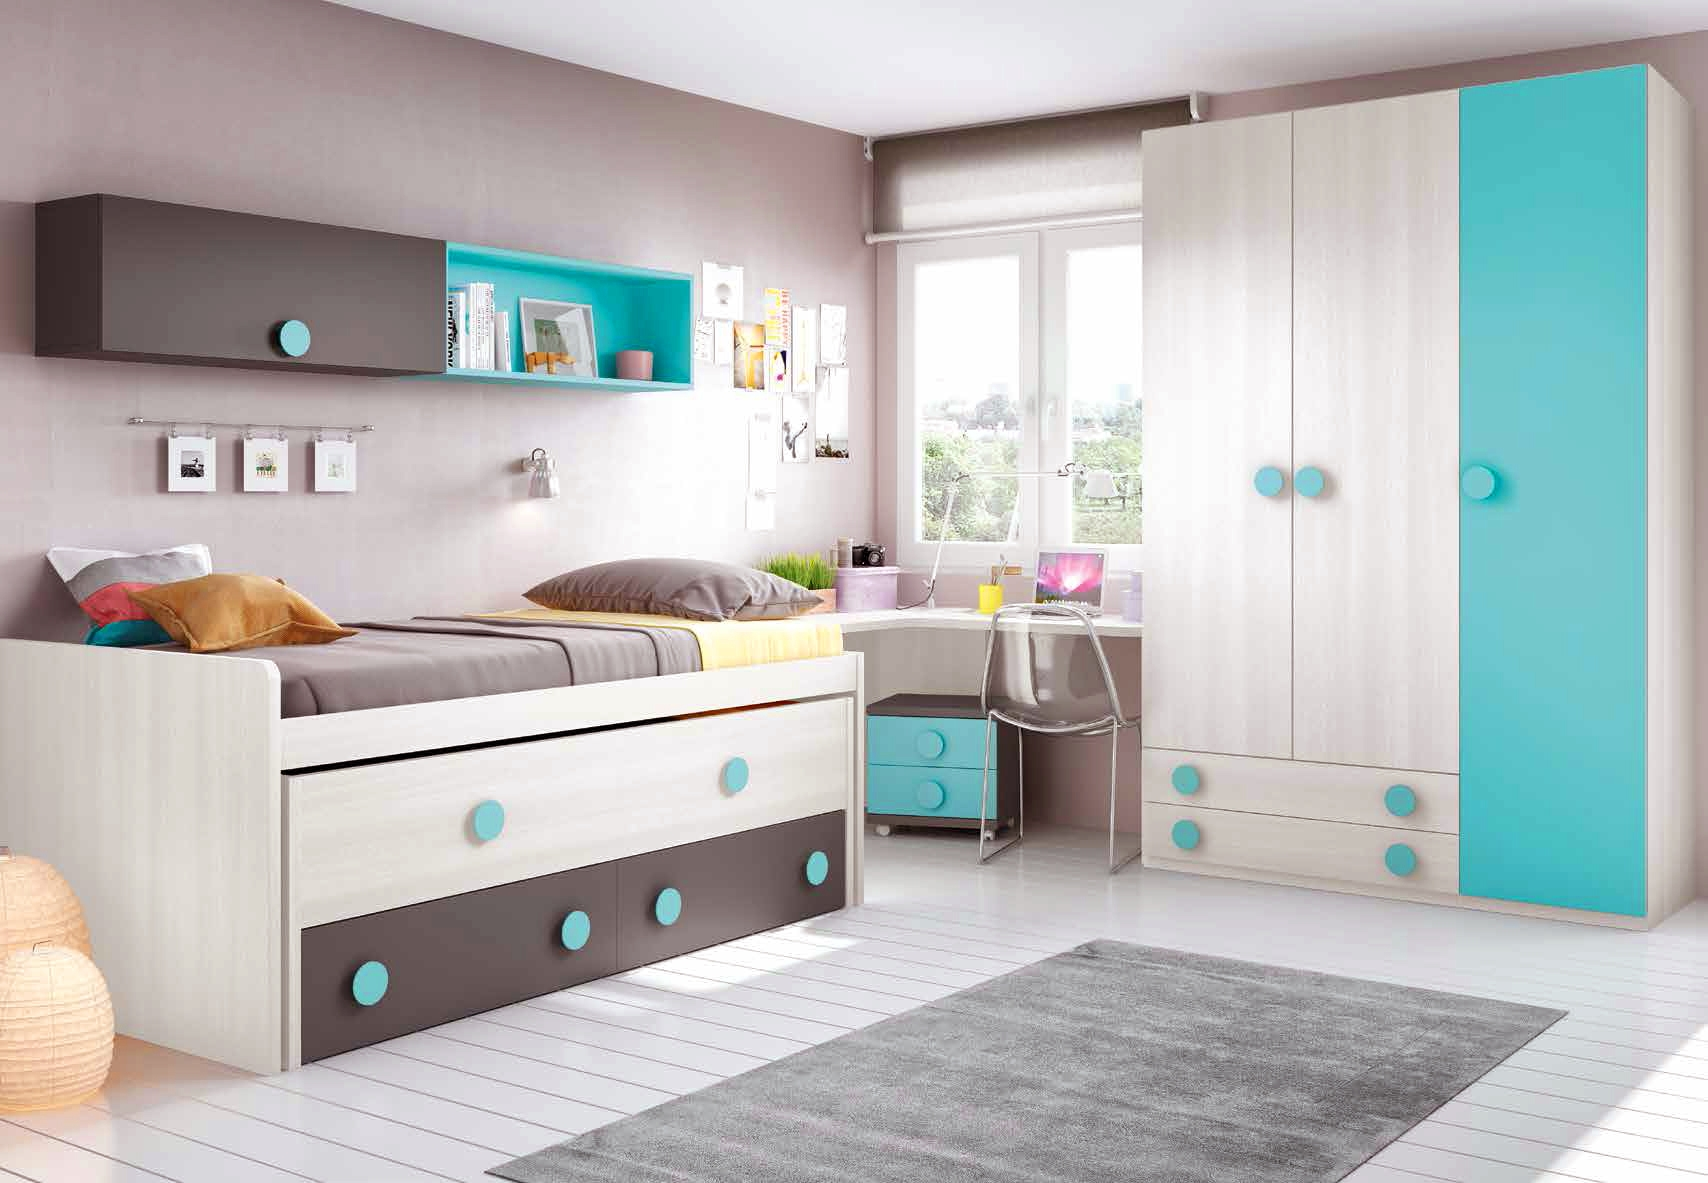 Deco chambre moderne ado for Decoration chambre moderne